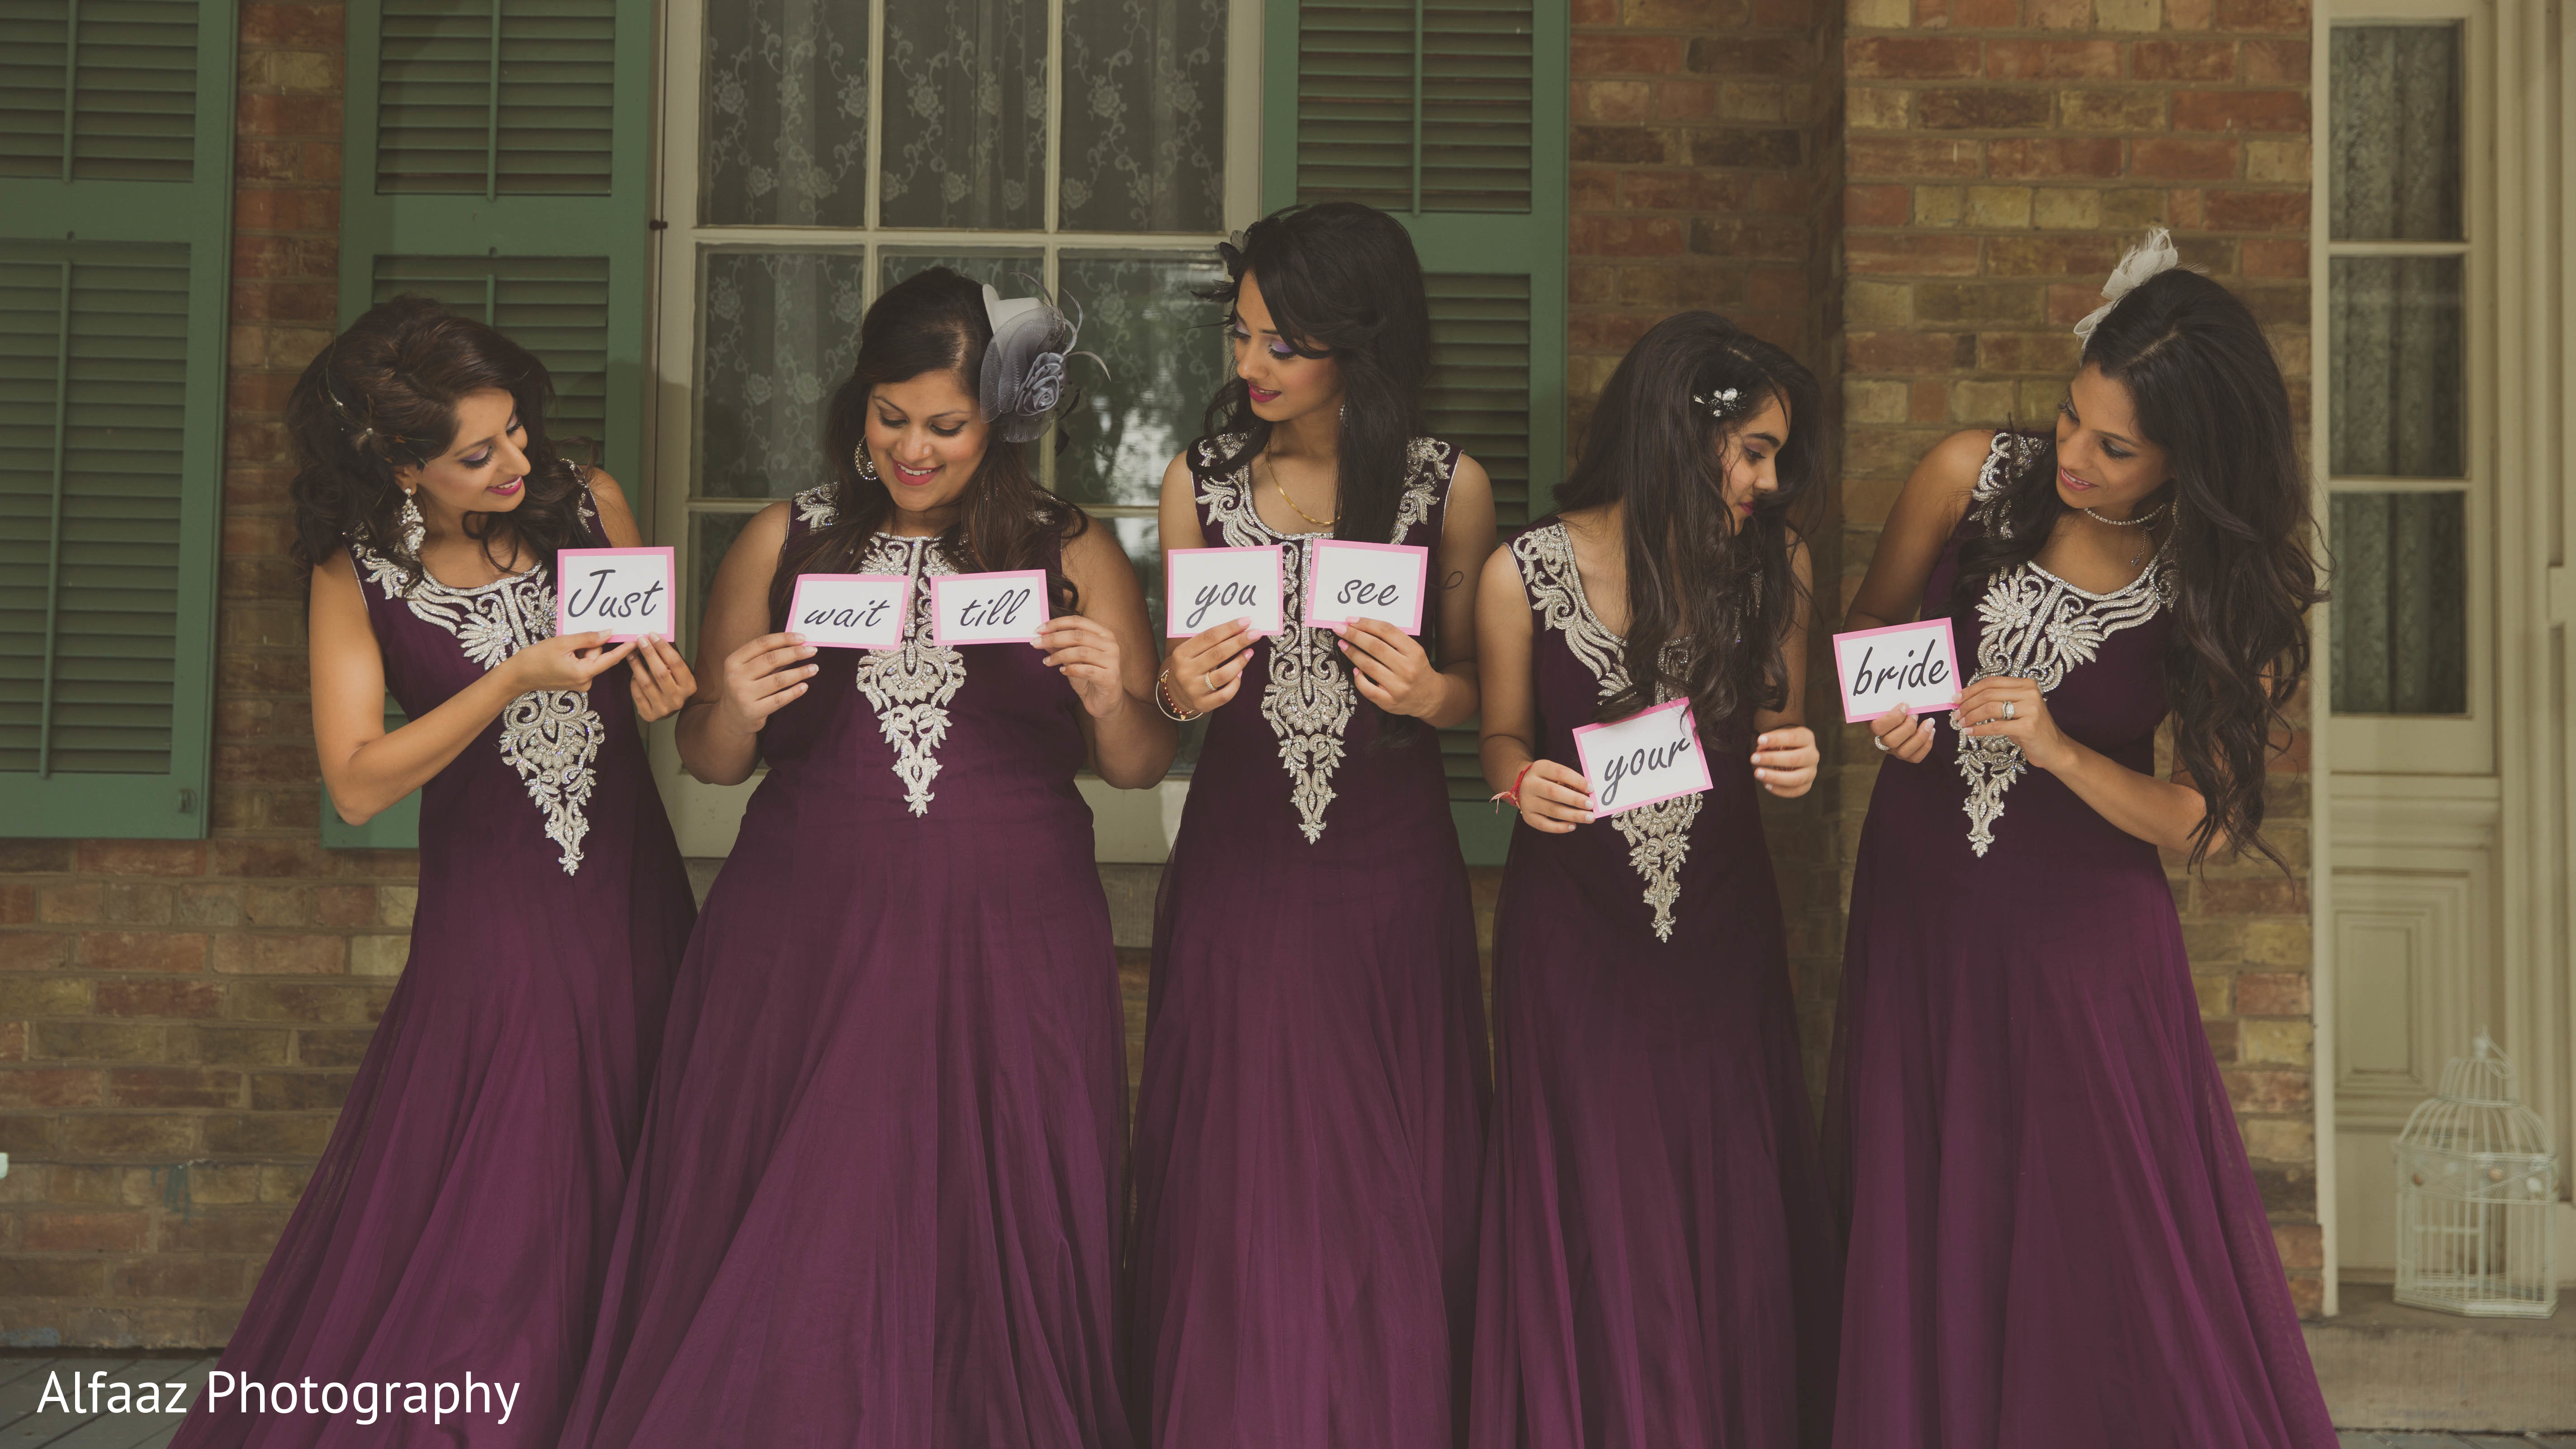 Bridal Party Portraits In Ontario Canada Sikh Wedding By Alfaaz Photography